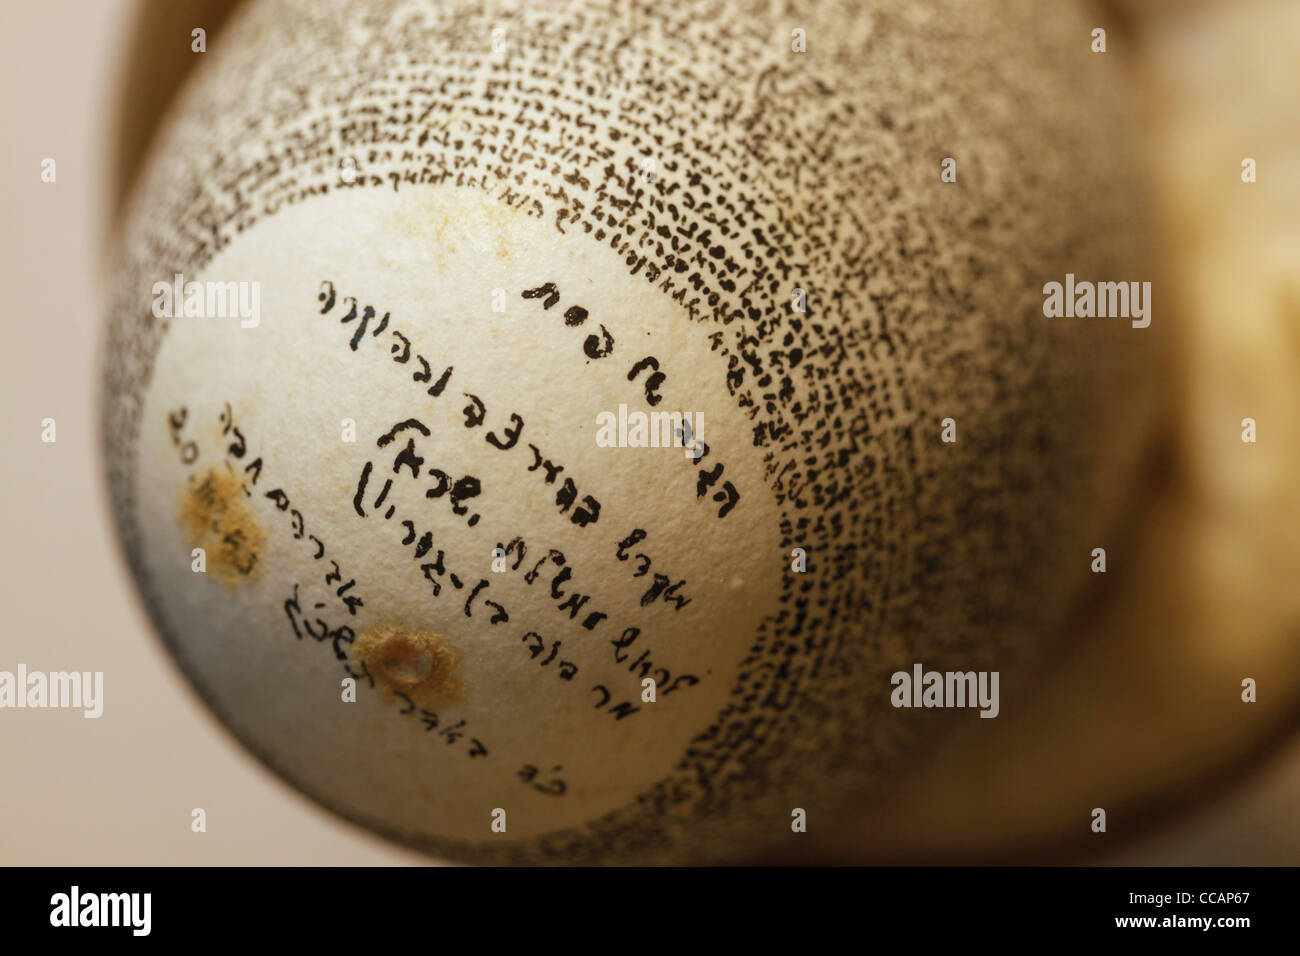 The Haggadah of Pesach religious Jewish text for Passover feast written in Hebrew on an egg displayed in Ben Gurion - Stock Image